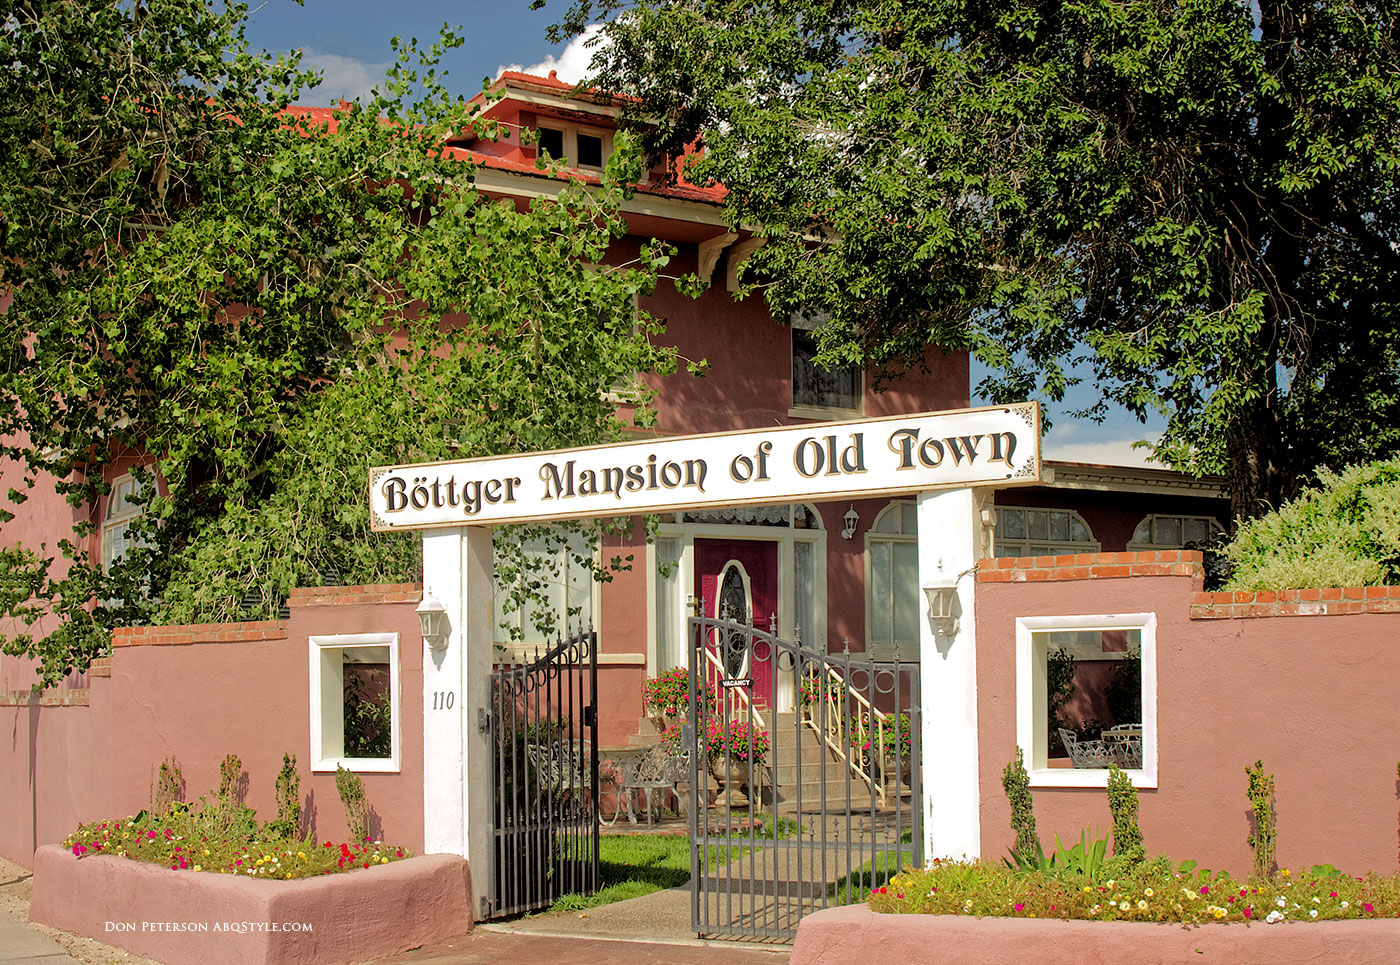 Bottger Mansion, Old Town Albuquerque